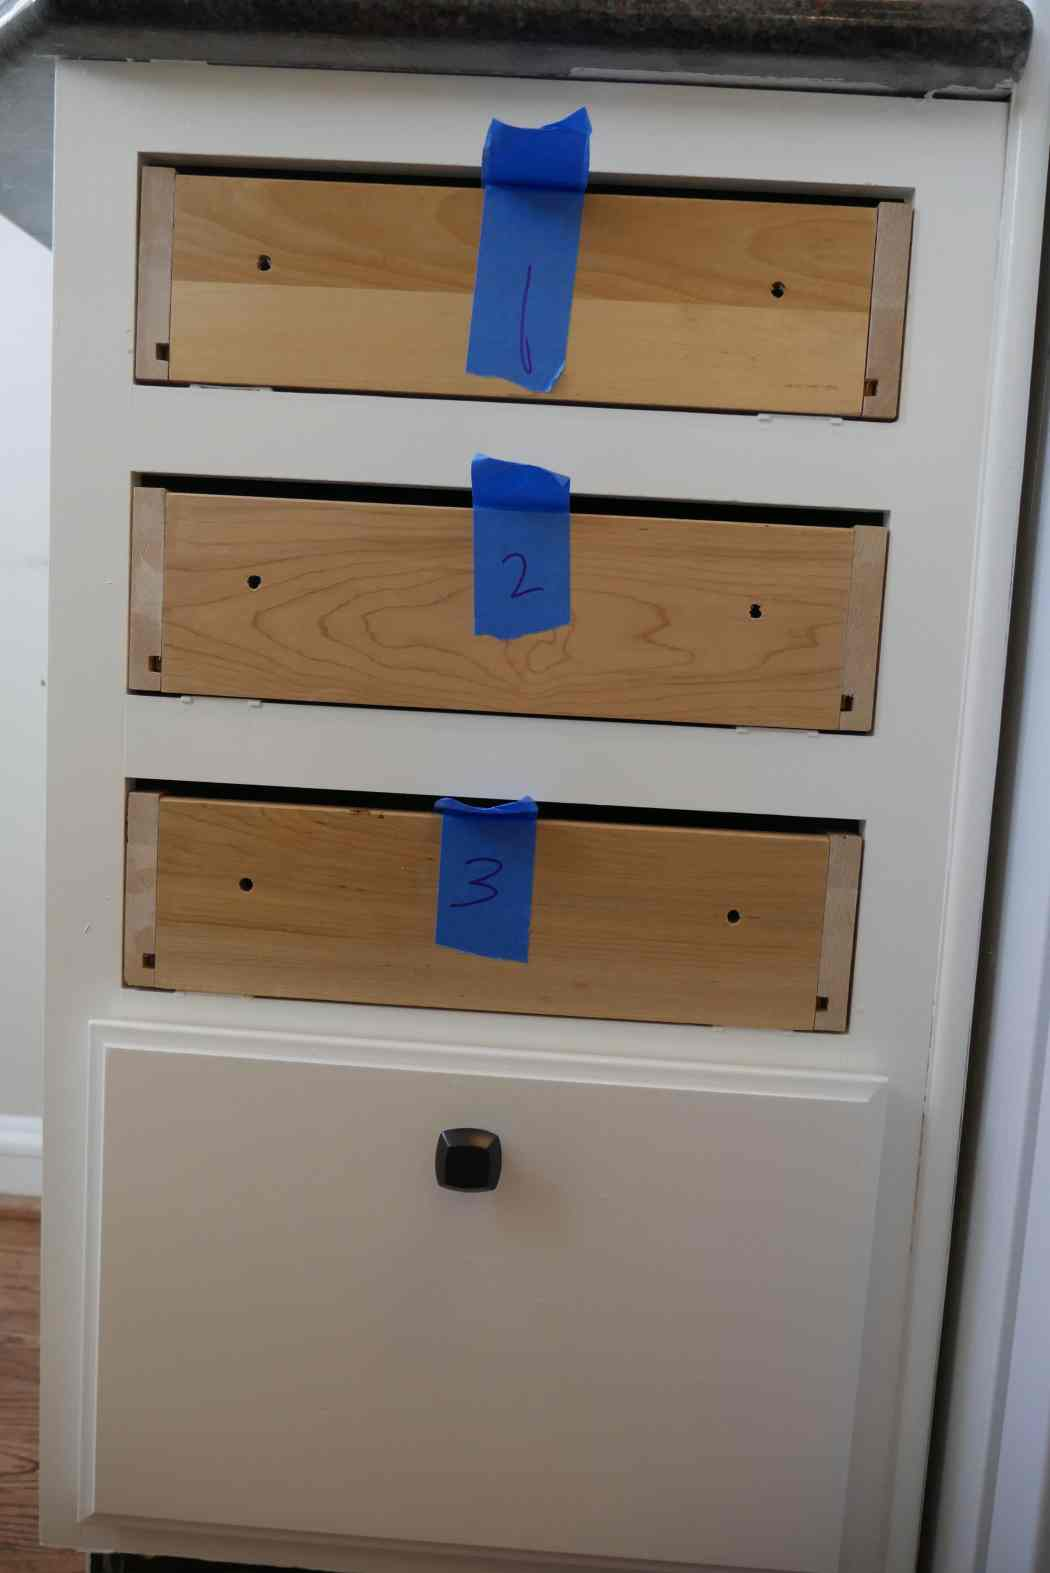 numbered cabinet drawers during renovation